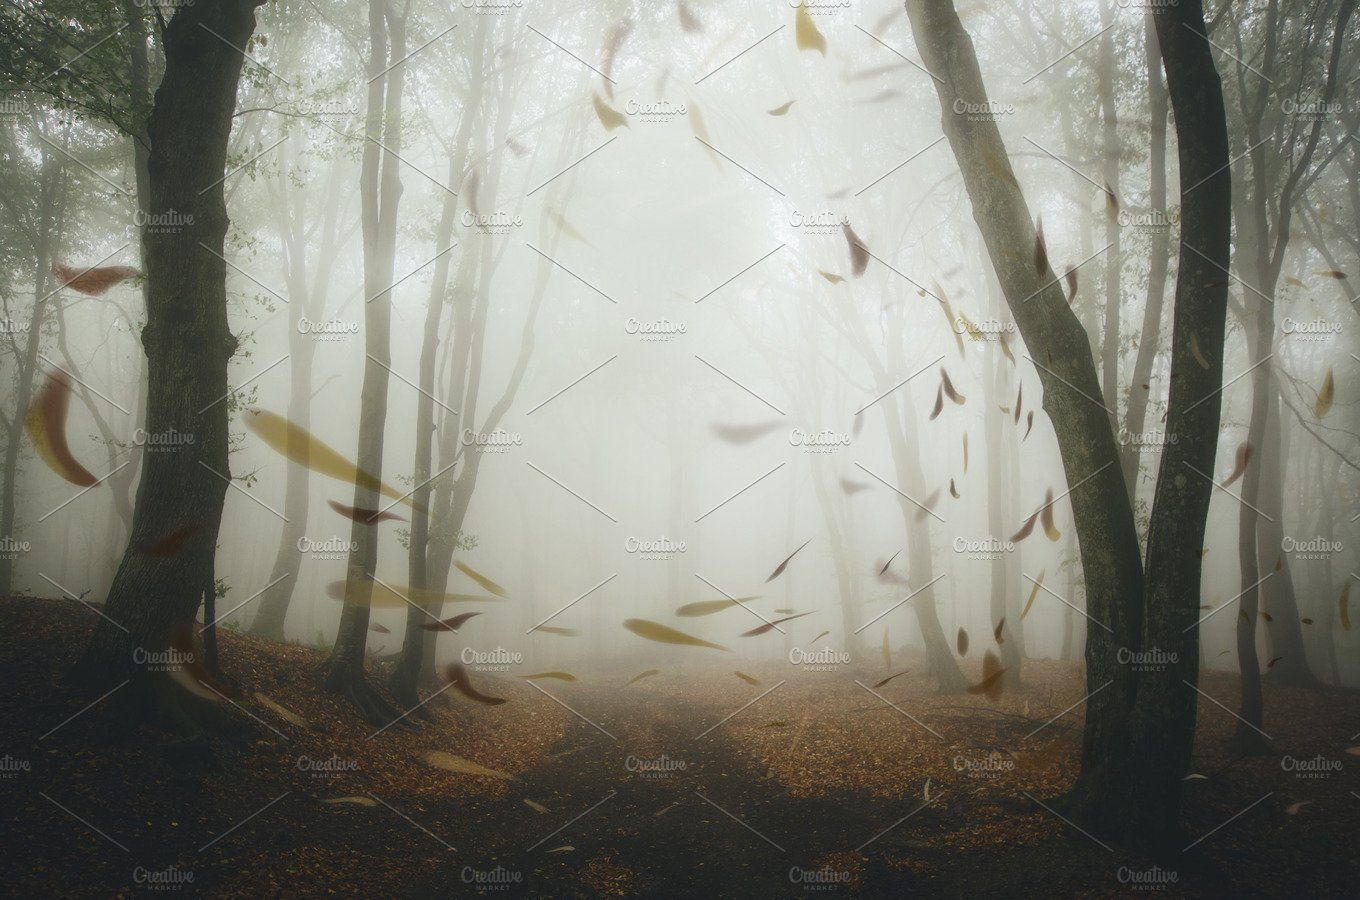 Autumn leaves falling in forest , #SPONSORED, #high#fog#resolution#photo #Ad #autumnleavesfalling Autumn leaves falling in forest , #SPONSORED, #high#fog#resolution#photo #Ad #autumnleavesfalling Autumn leaves falling in forest , #SPONSORED, #high#fog#resolution#photo #Ad #autumnleavesfalling Autumn leaves falling in forest , #SPONSORED, #high#fog#resolution#photo #Ad #autumnleavesfalling Autumn leaves falling in forest , #SPONSORED, #high#fog#resolution#photo #Ad #autumnleavesfalling Autumn lea #autumnleavesfalling